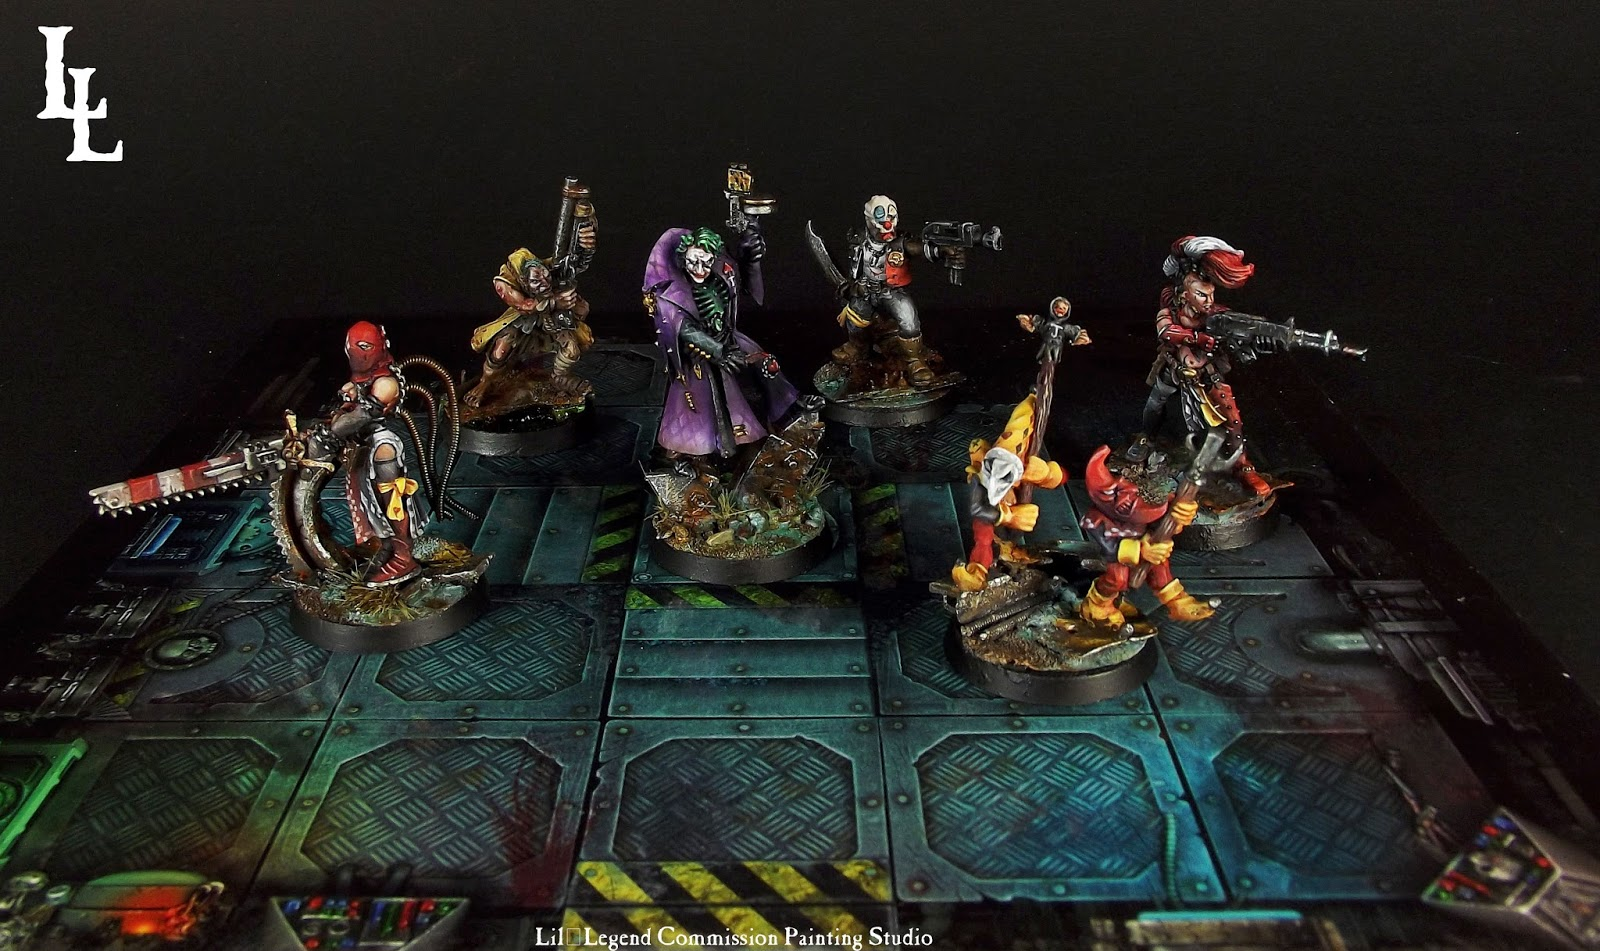 Why so serious the joker gang necromunda inquisimunda warband4 lillegend commission painting - Gang gang ...